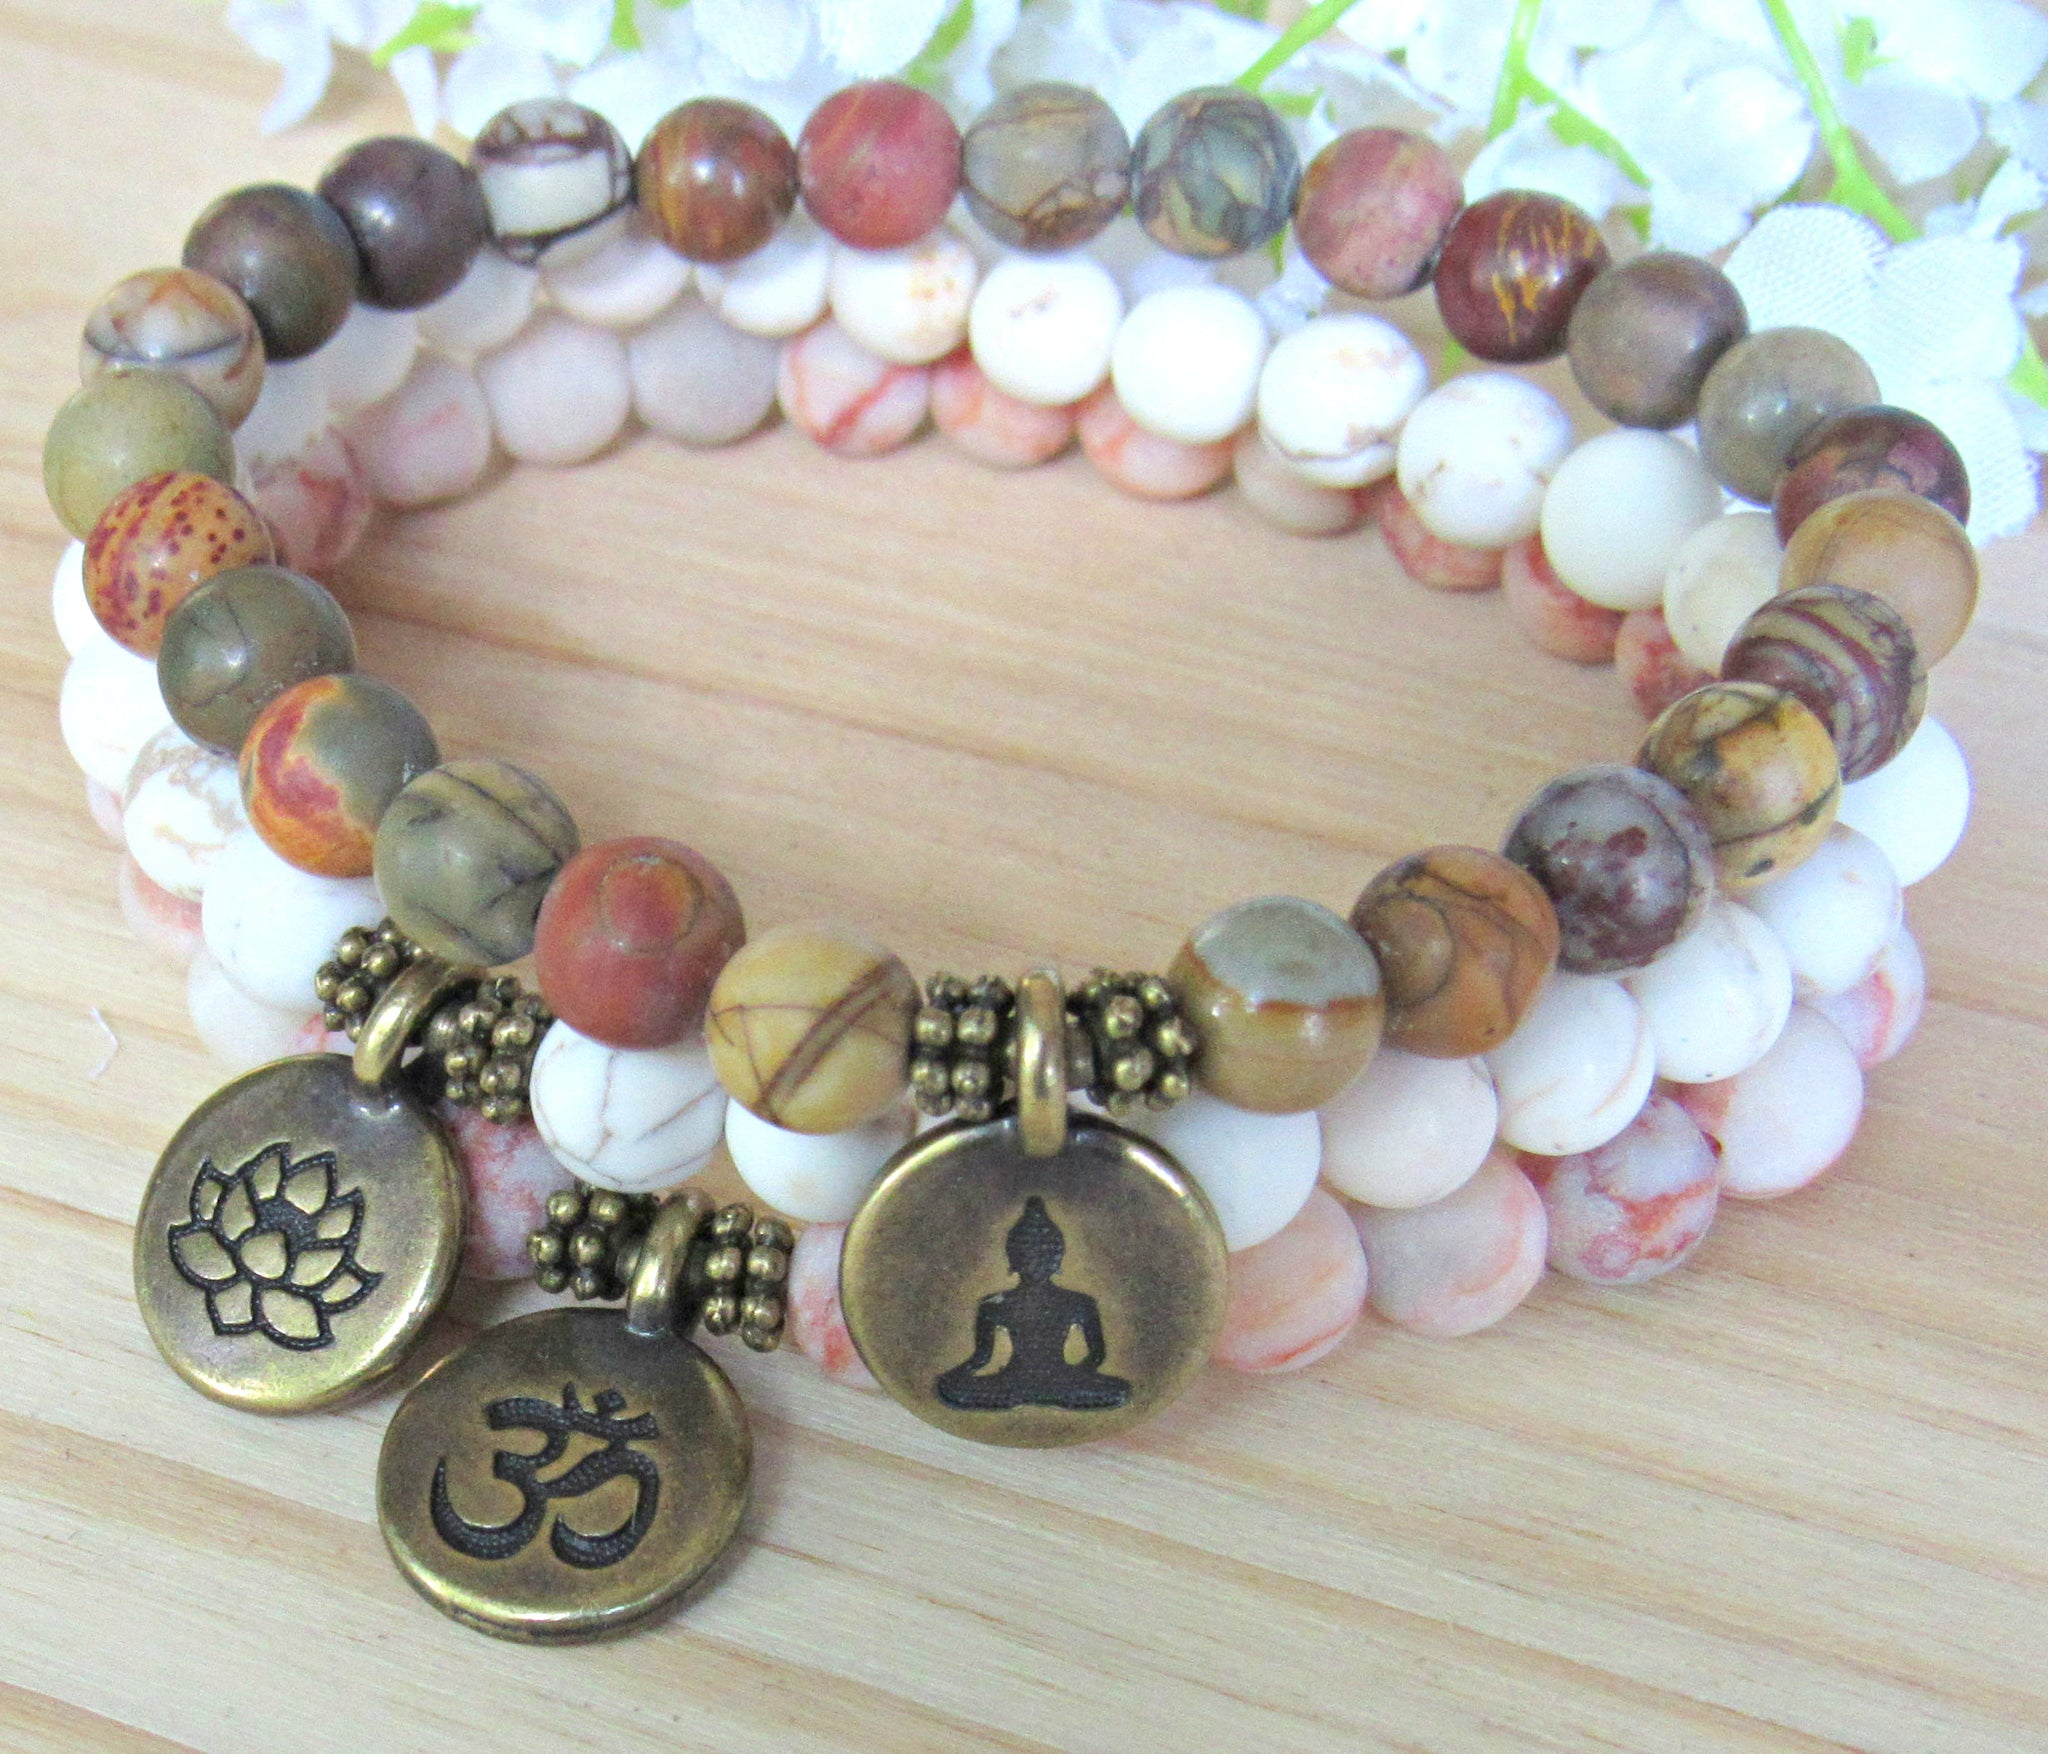 1d0c0c1d3e298b yoga bracelet set, brown, white, red, multicolor, jasper,. yoga bracelet set,  brown, white, red, multicolor, jasper,